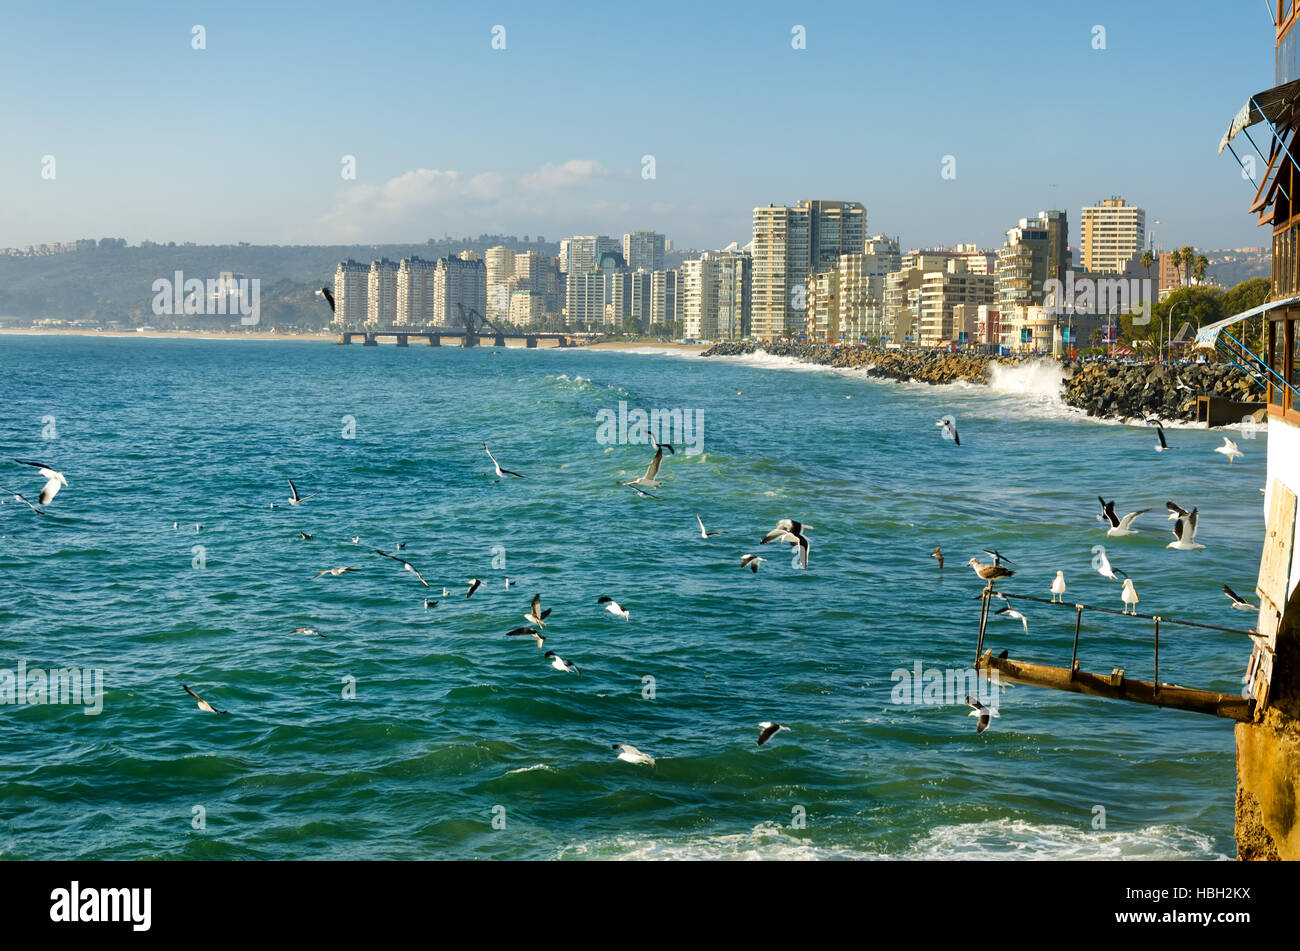 Birds enjoying the sun and surf in Vina del Mar, Chile - Stock Image